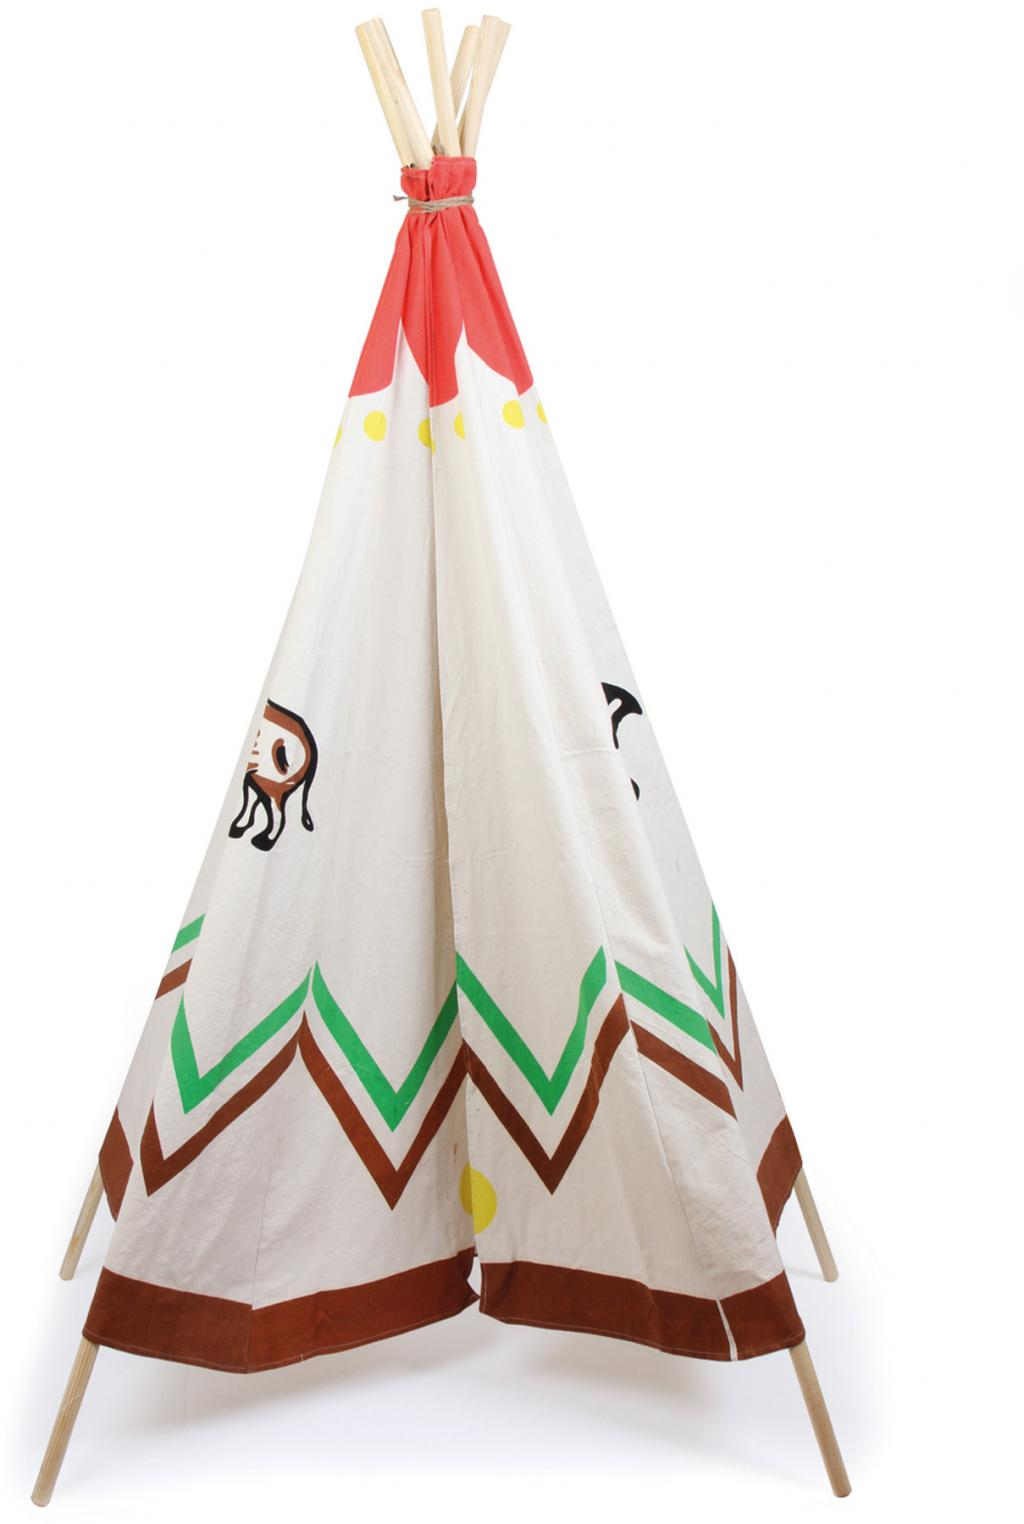 small foot Tipi-Telt, Deluxe